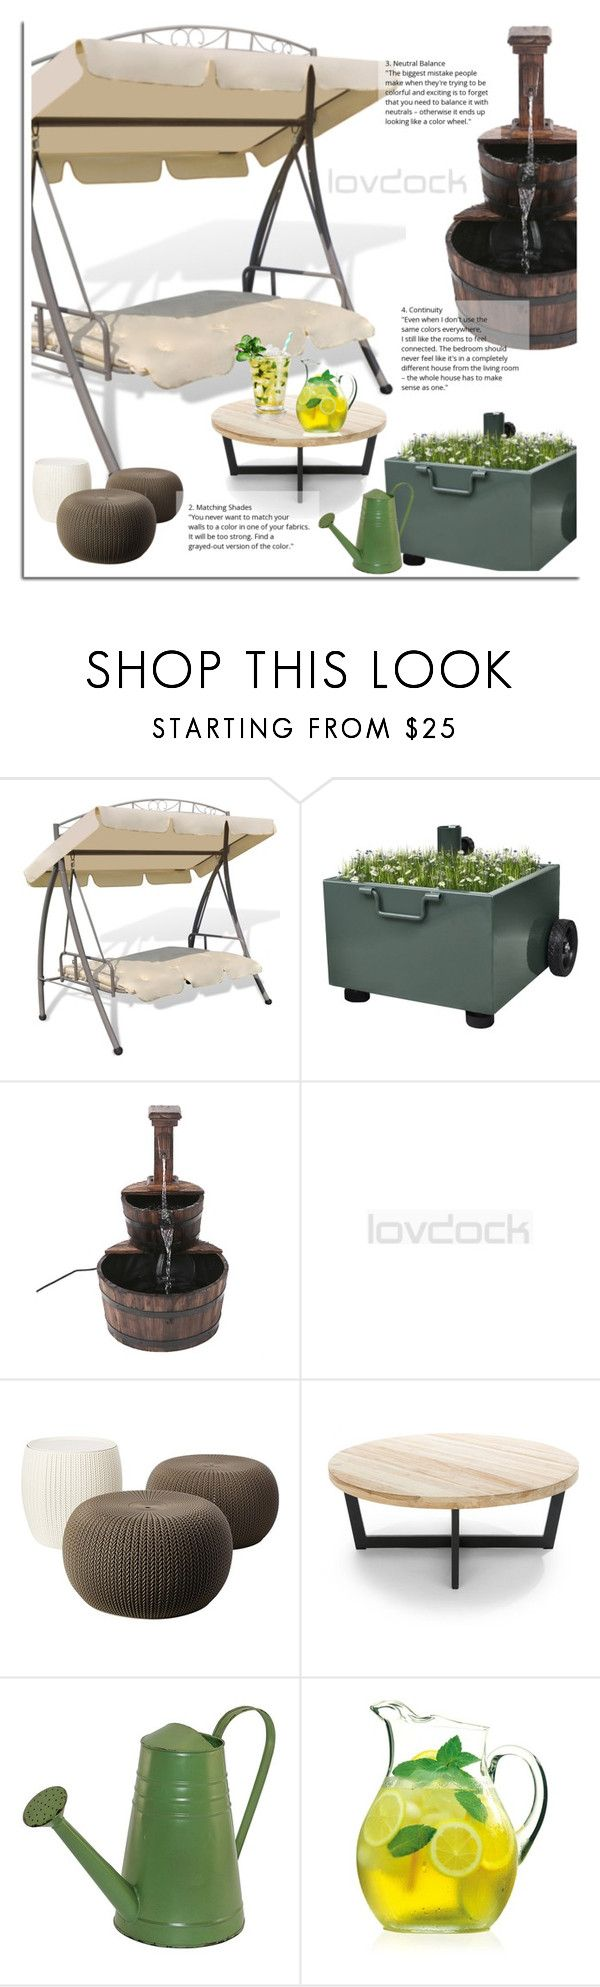 LovDock by dora04 on Polyvore featuring interior, interiors, interior design, home, home decor, interior decorating, Fountain, Luigi Bormioli and lovdock